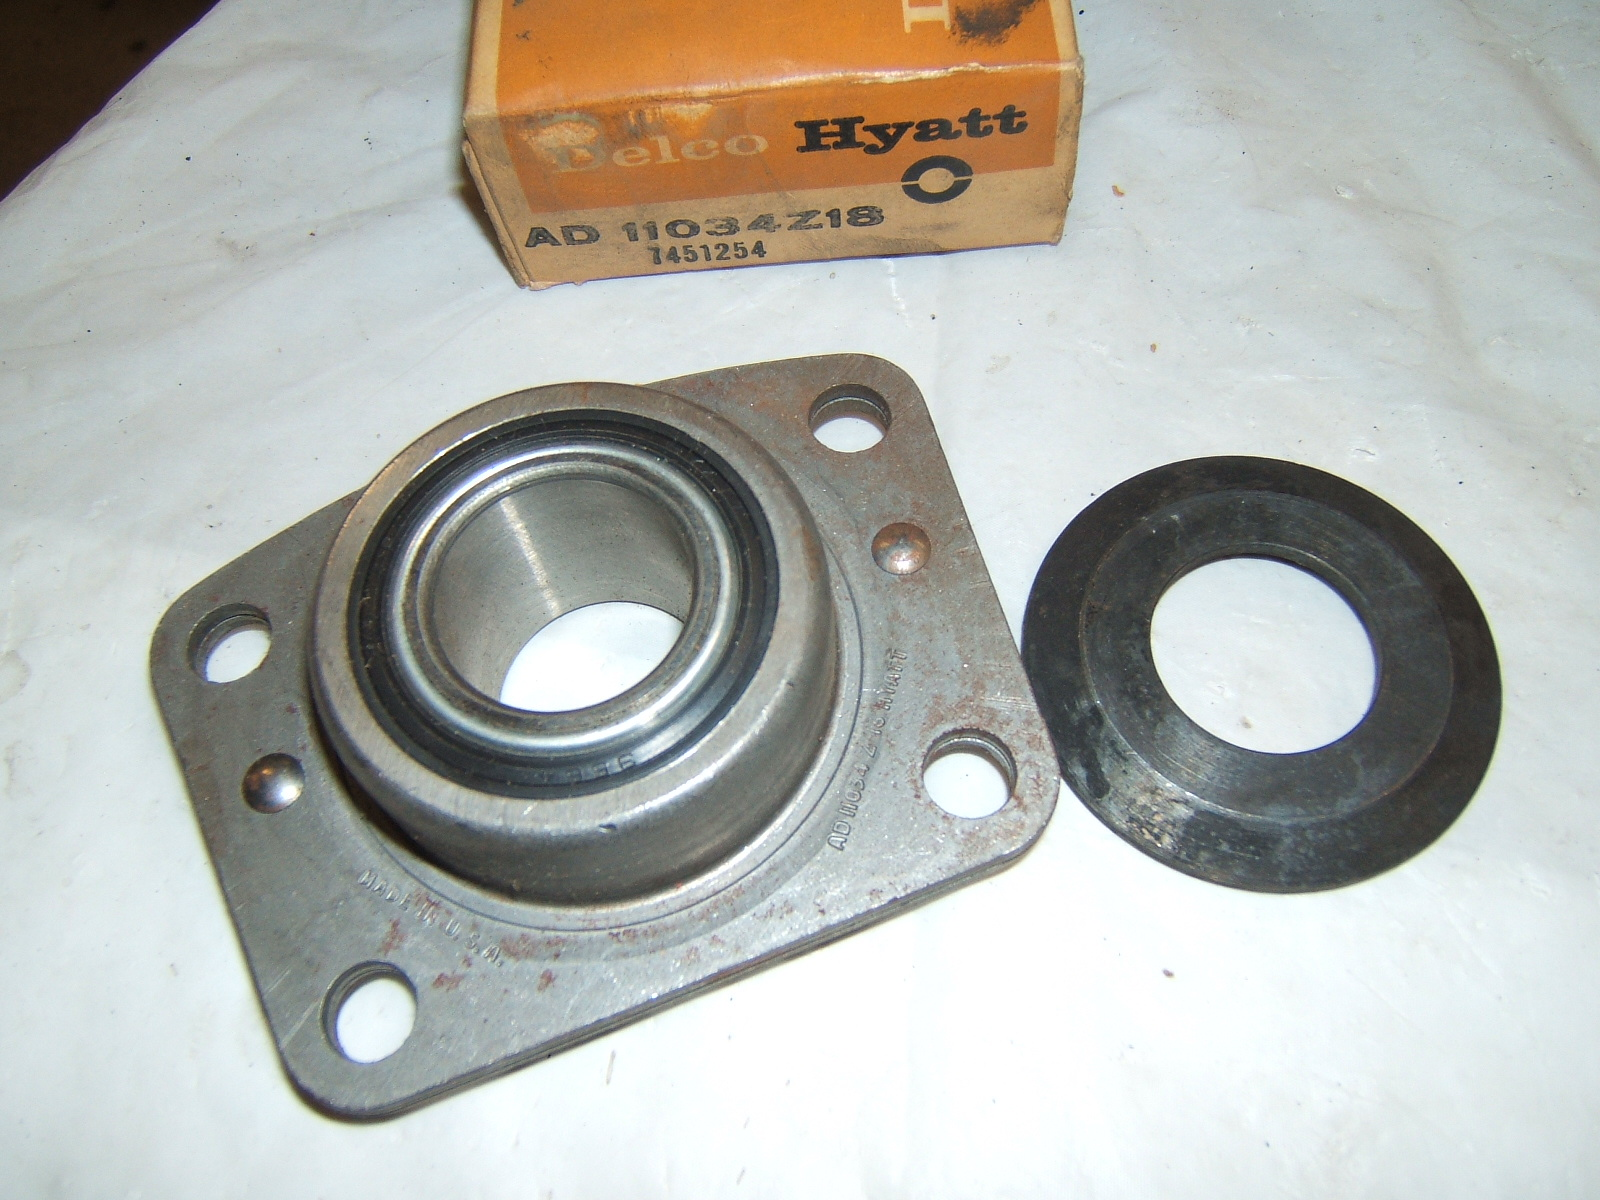 1960 61 62 Corvair rear axle bearing AD11034z18 7451254 (a AD11034z18 7451254)